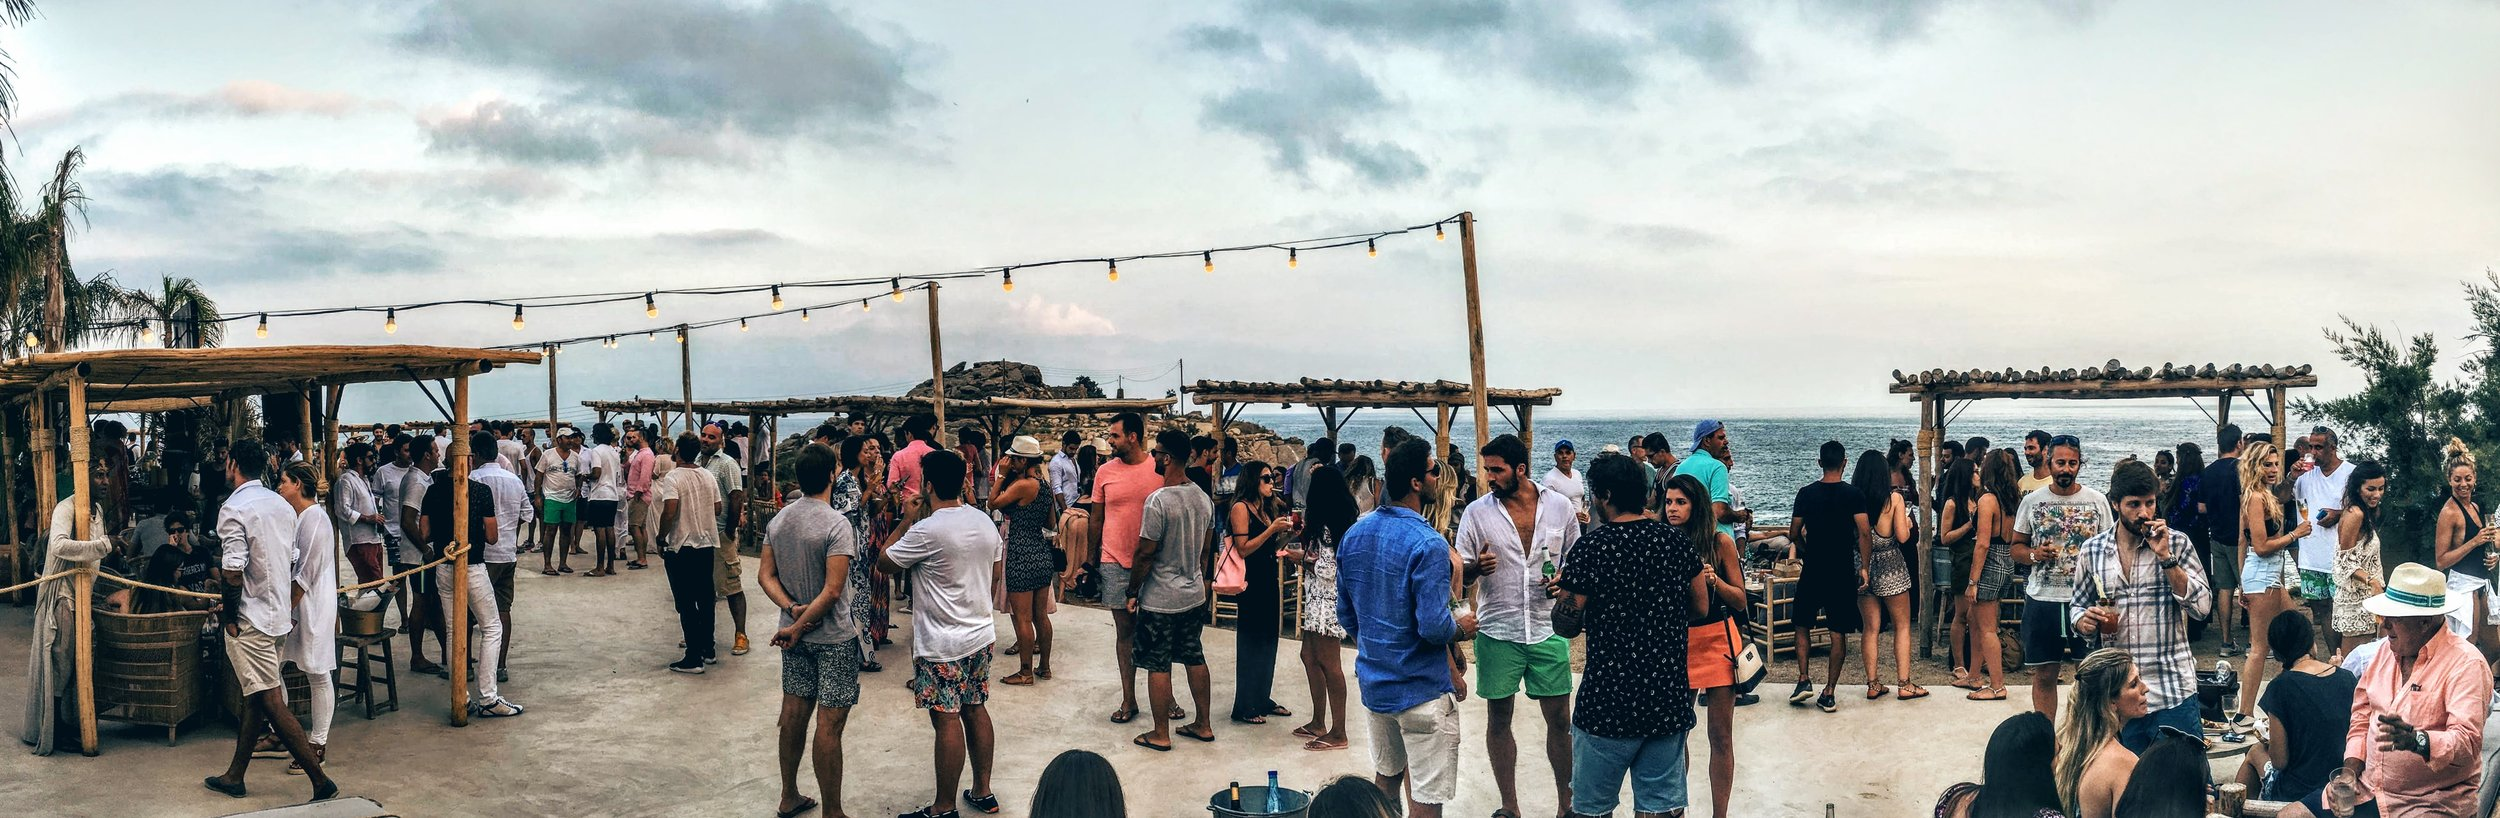 Crowds flock in early before sunset at Scorpios on Sneaky Sundays